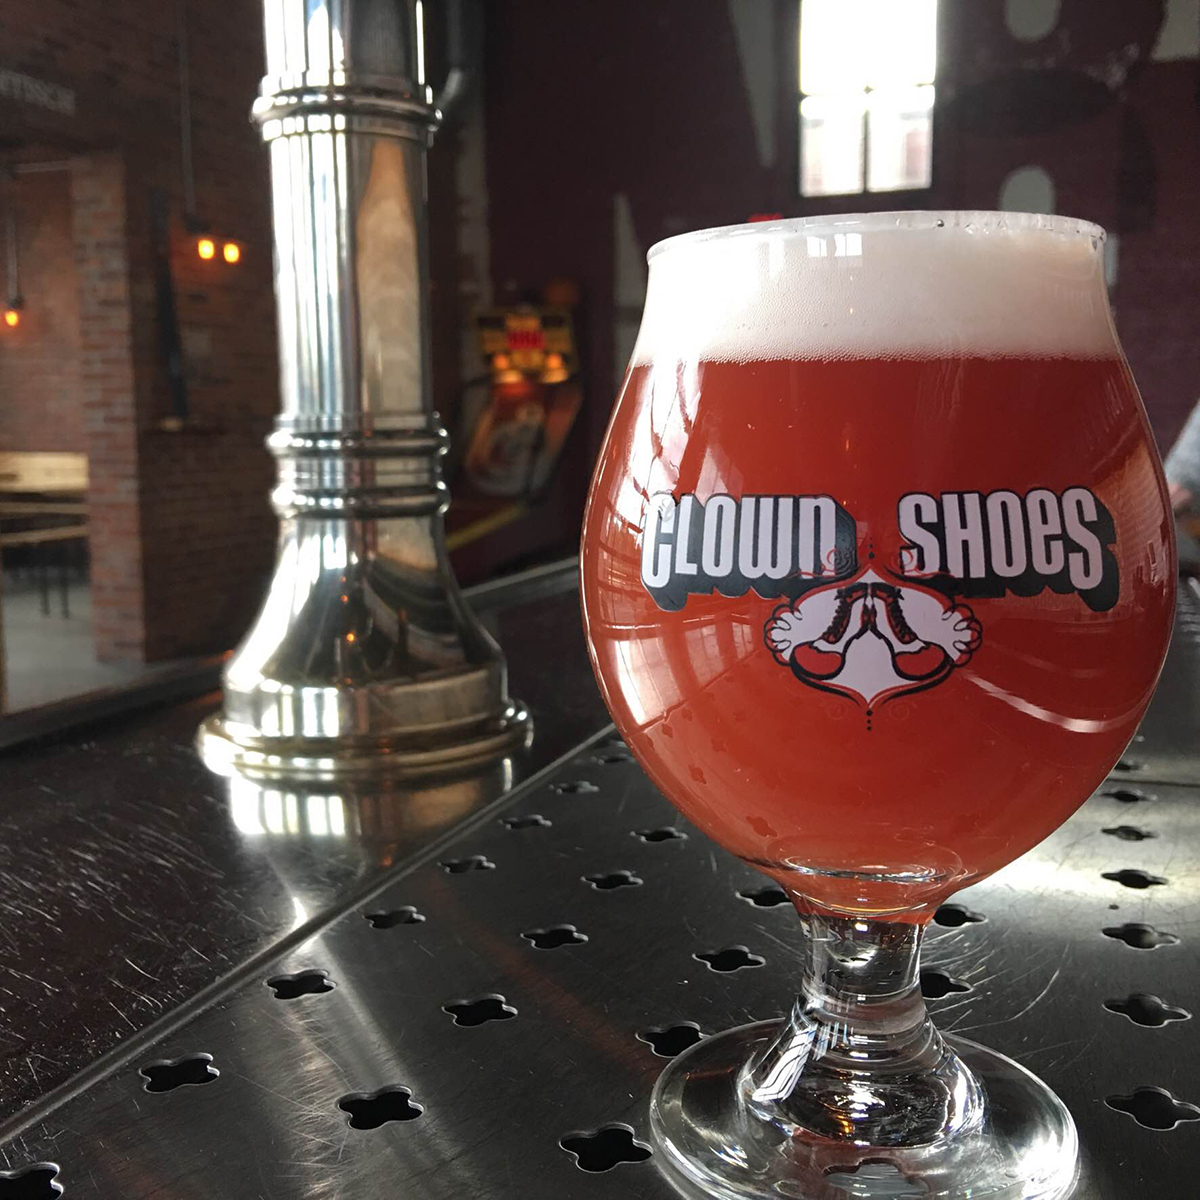 Black currant saison, by Clown Shoes Beer